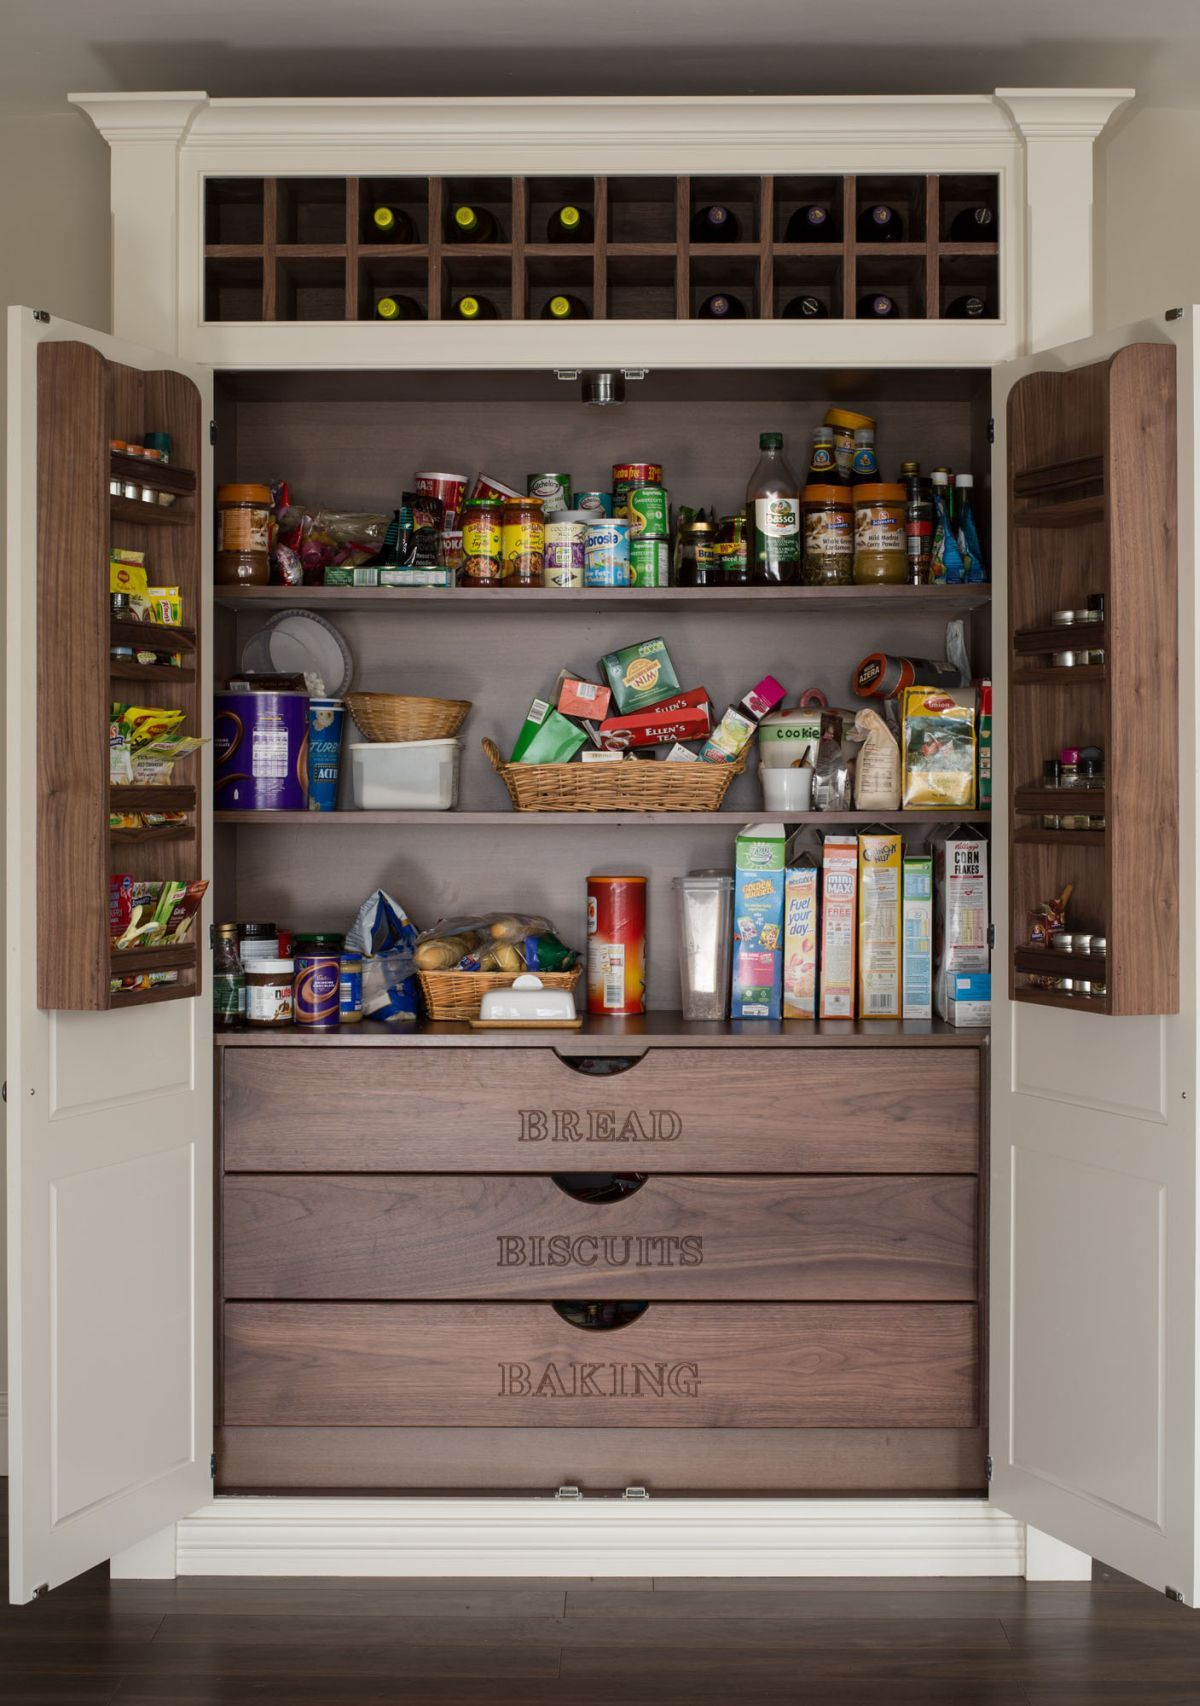 Kitchen Pantry Organization Tips 15 kitchen pantry ideas with form and function semi detached 65 ingenious kitchen organization tips and storage ideas workwithnaturefo